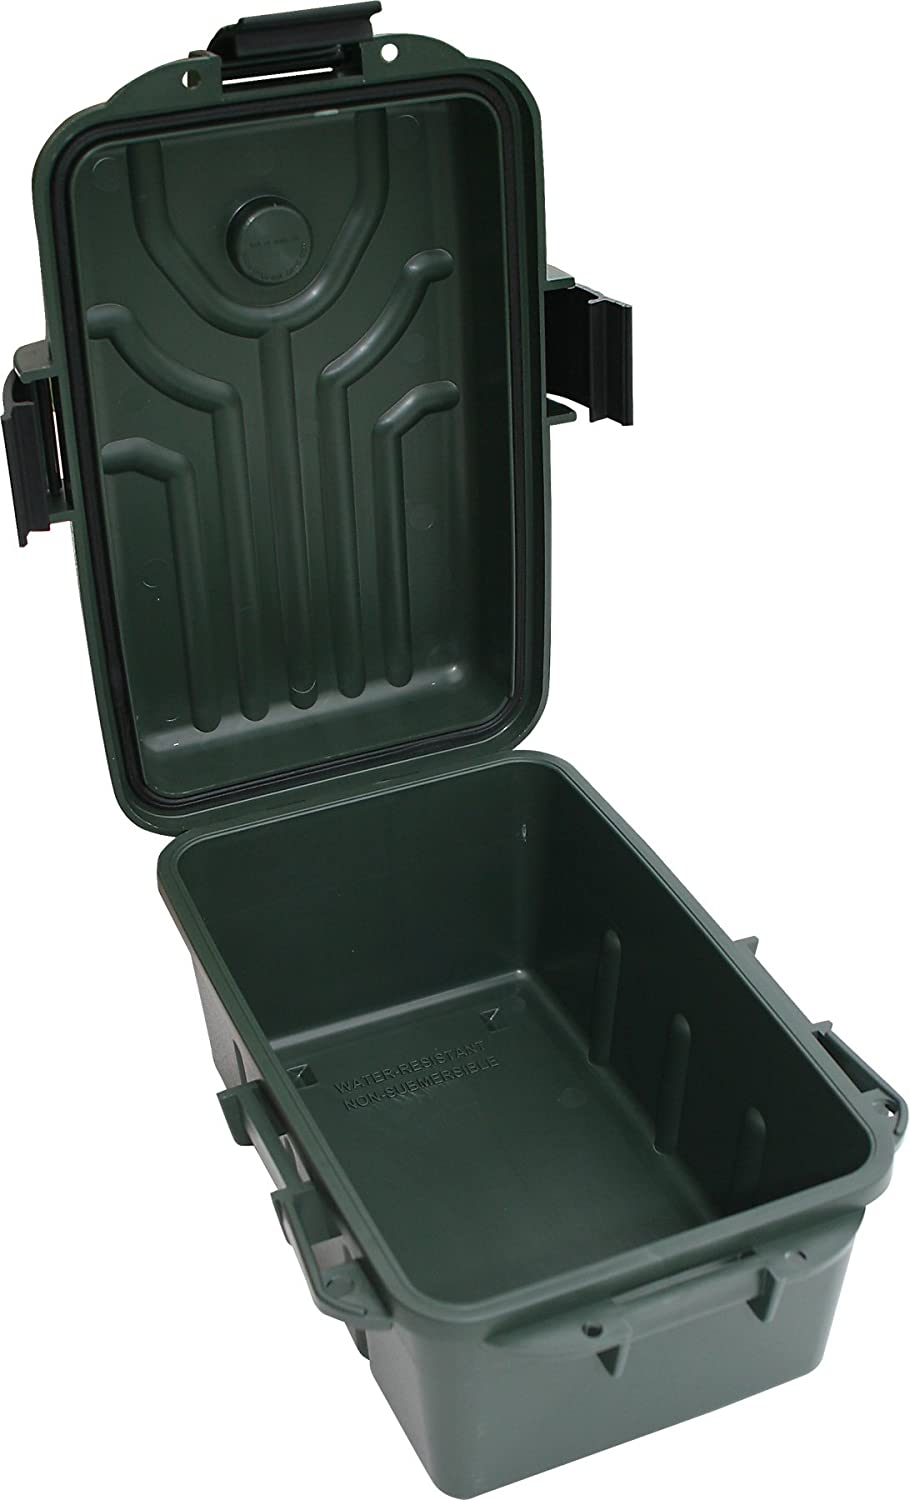 Wonderful Amazon.com : MTM Survivor Dry Box With O Ring Seal (Forest Green, Large) :  Diving Dry Boxes : Sports U0026 Outdoors